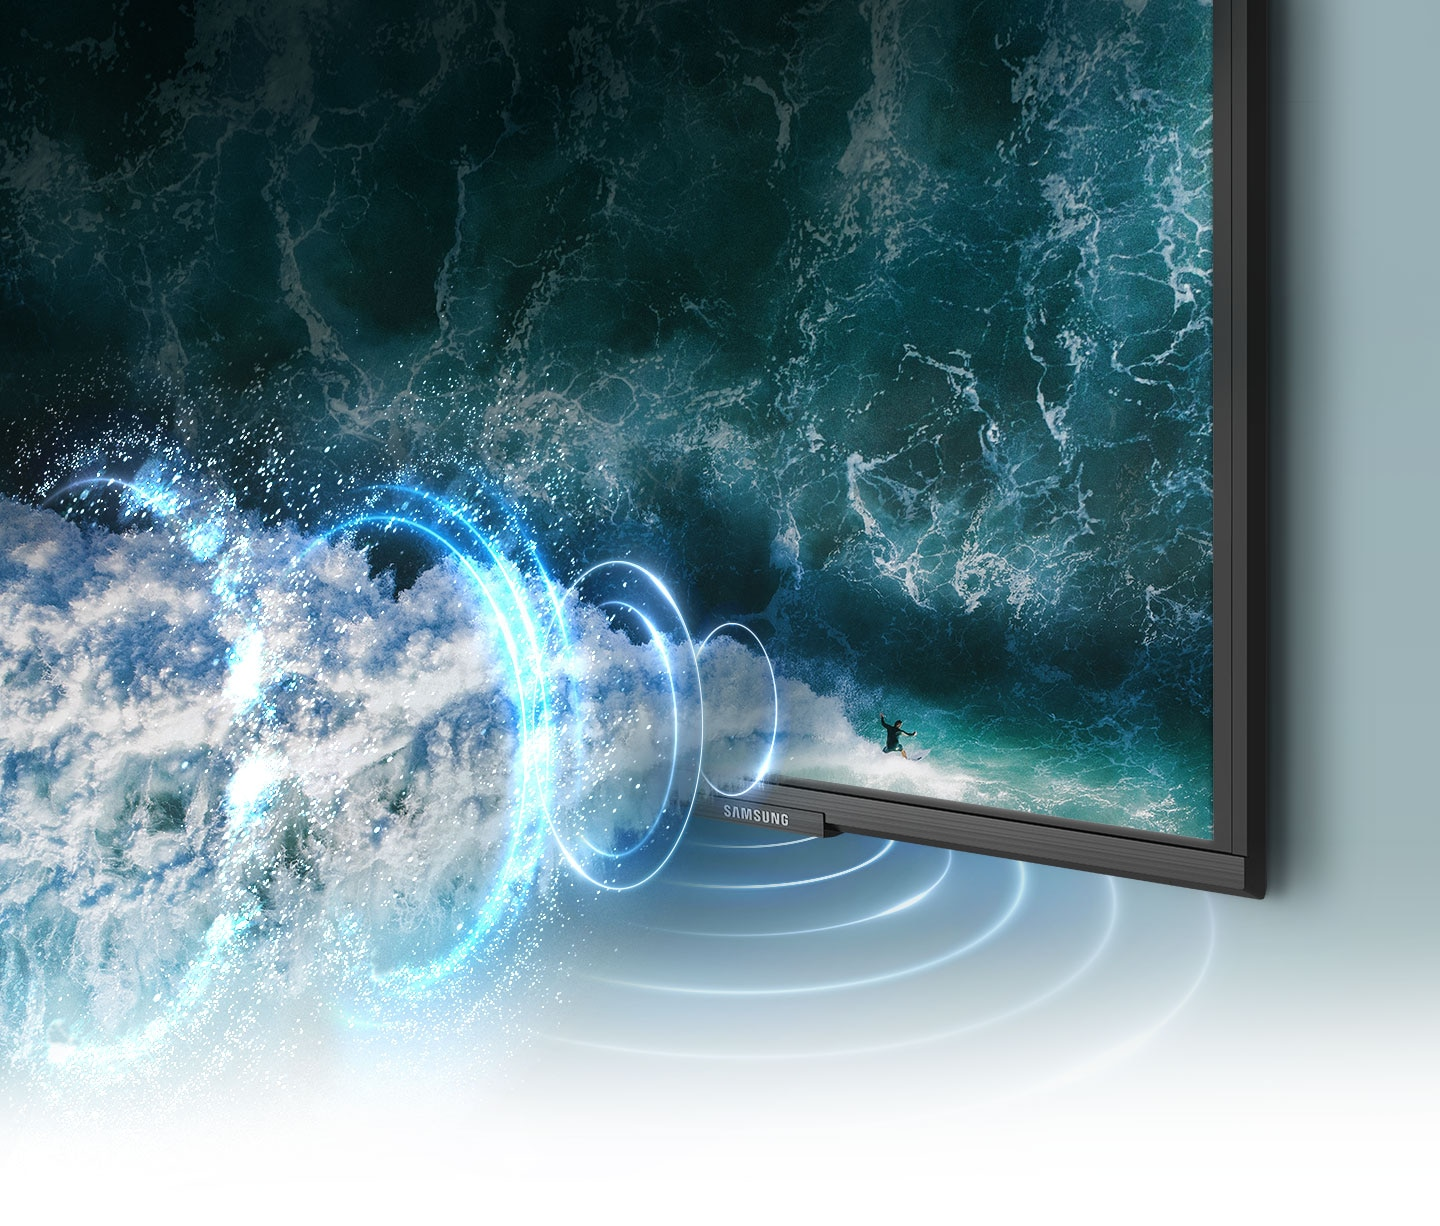 Simulated sound wave graphics demonstrate object tracking sound technology as it follows a surfer across the TV screen.